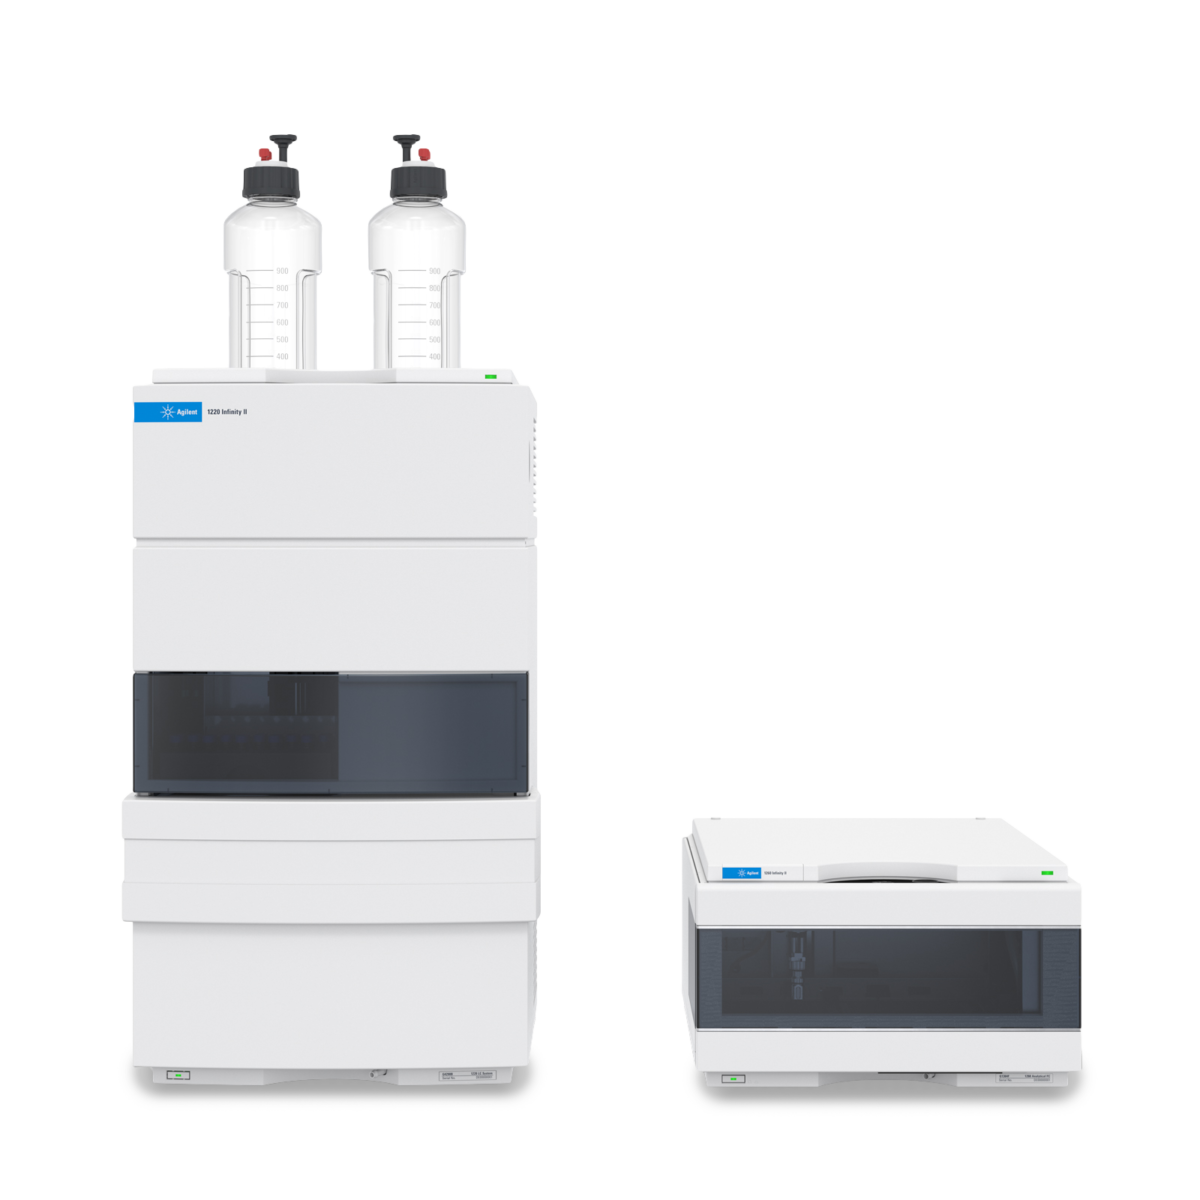 Agilent 1220 Infinity II Analytical-Scale LC Purification System